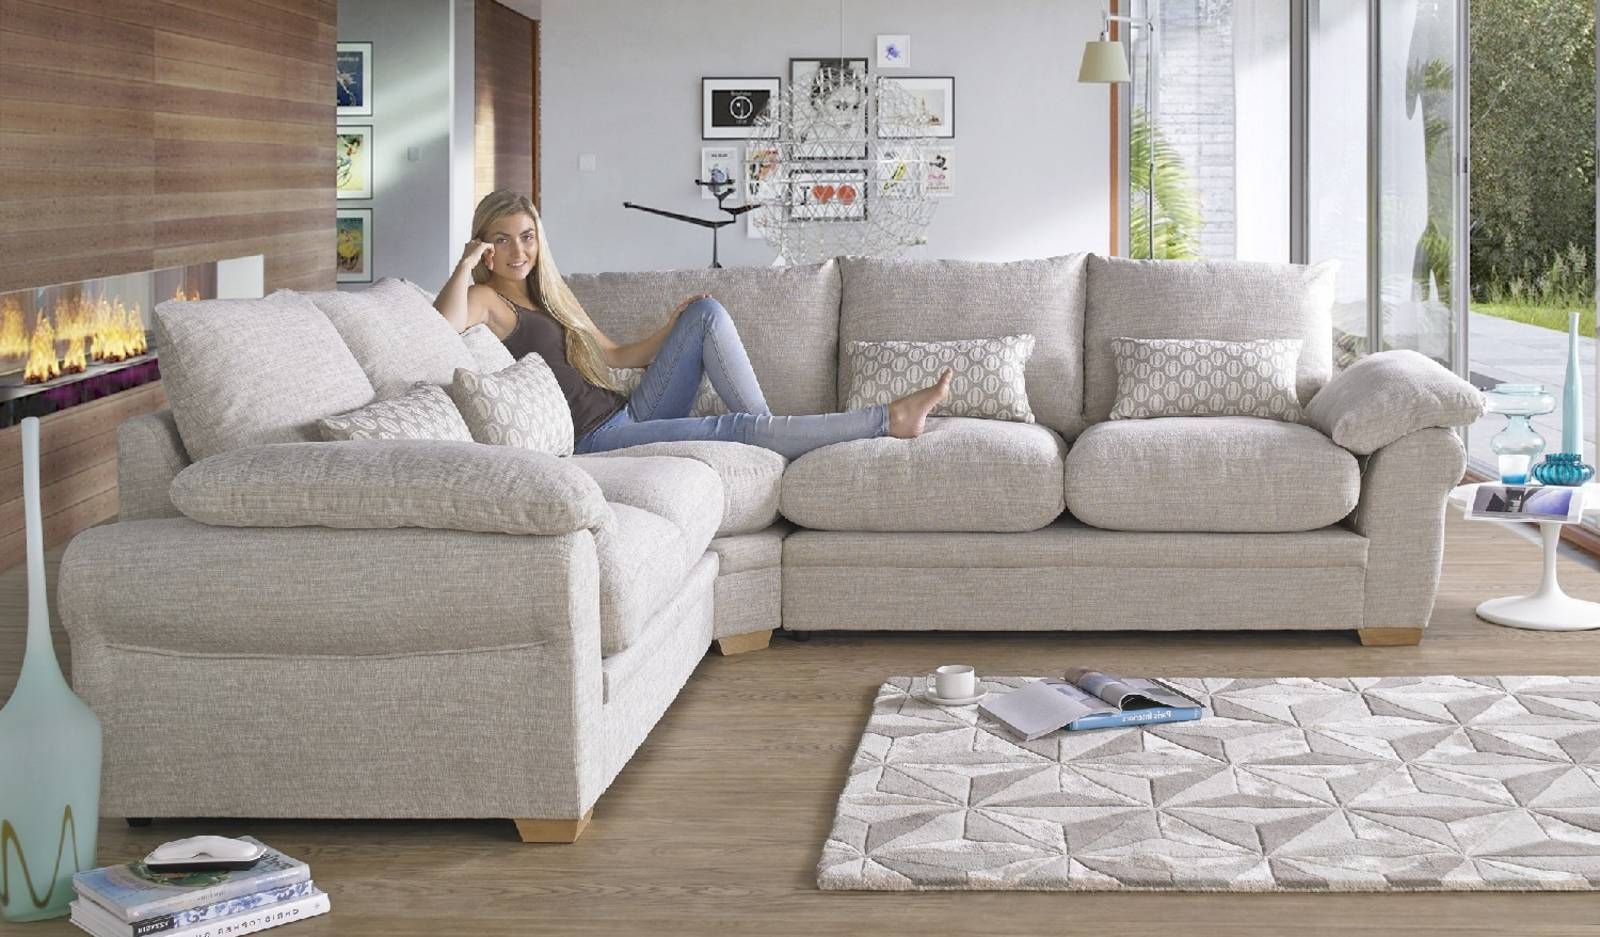 Mango Living Room Furniture Mango Sofology Available In Numerous Size Options But Limited